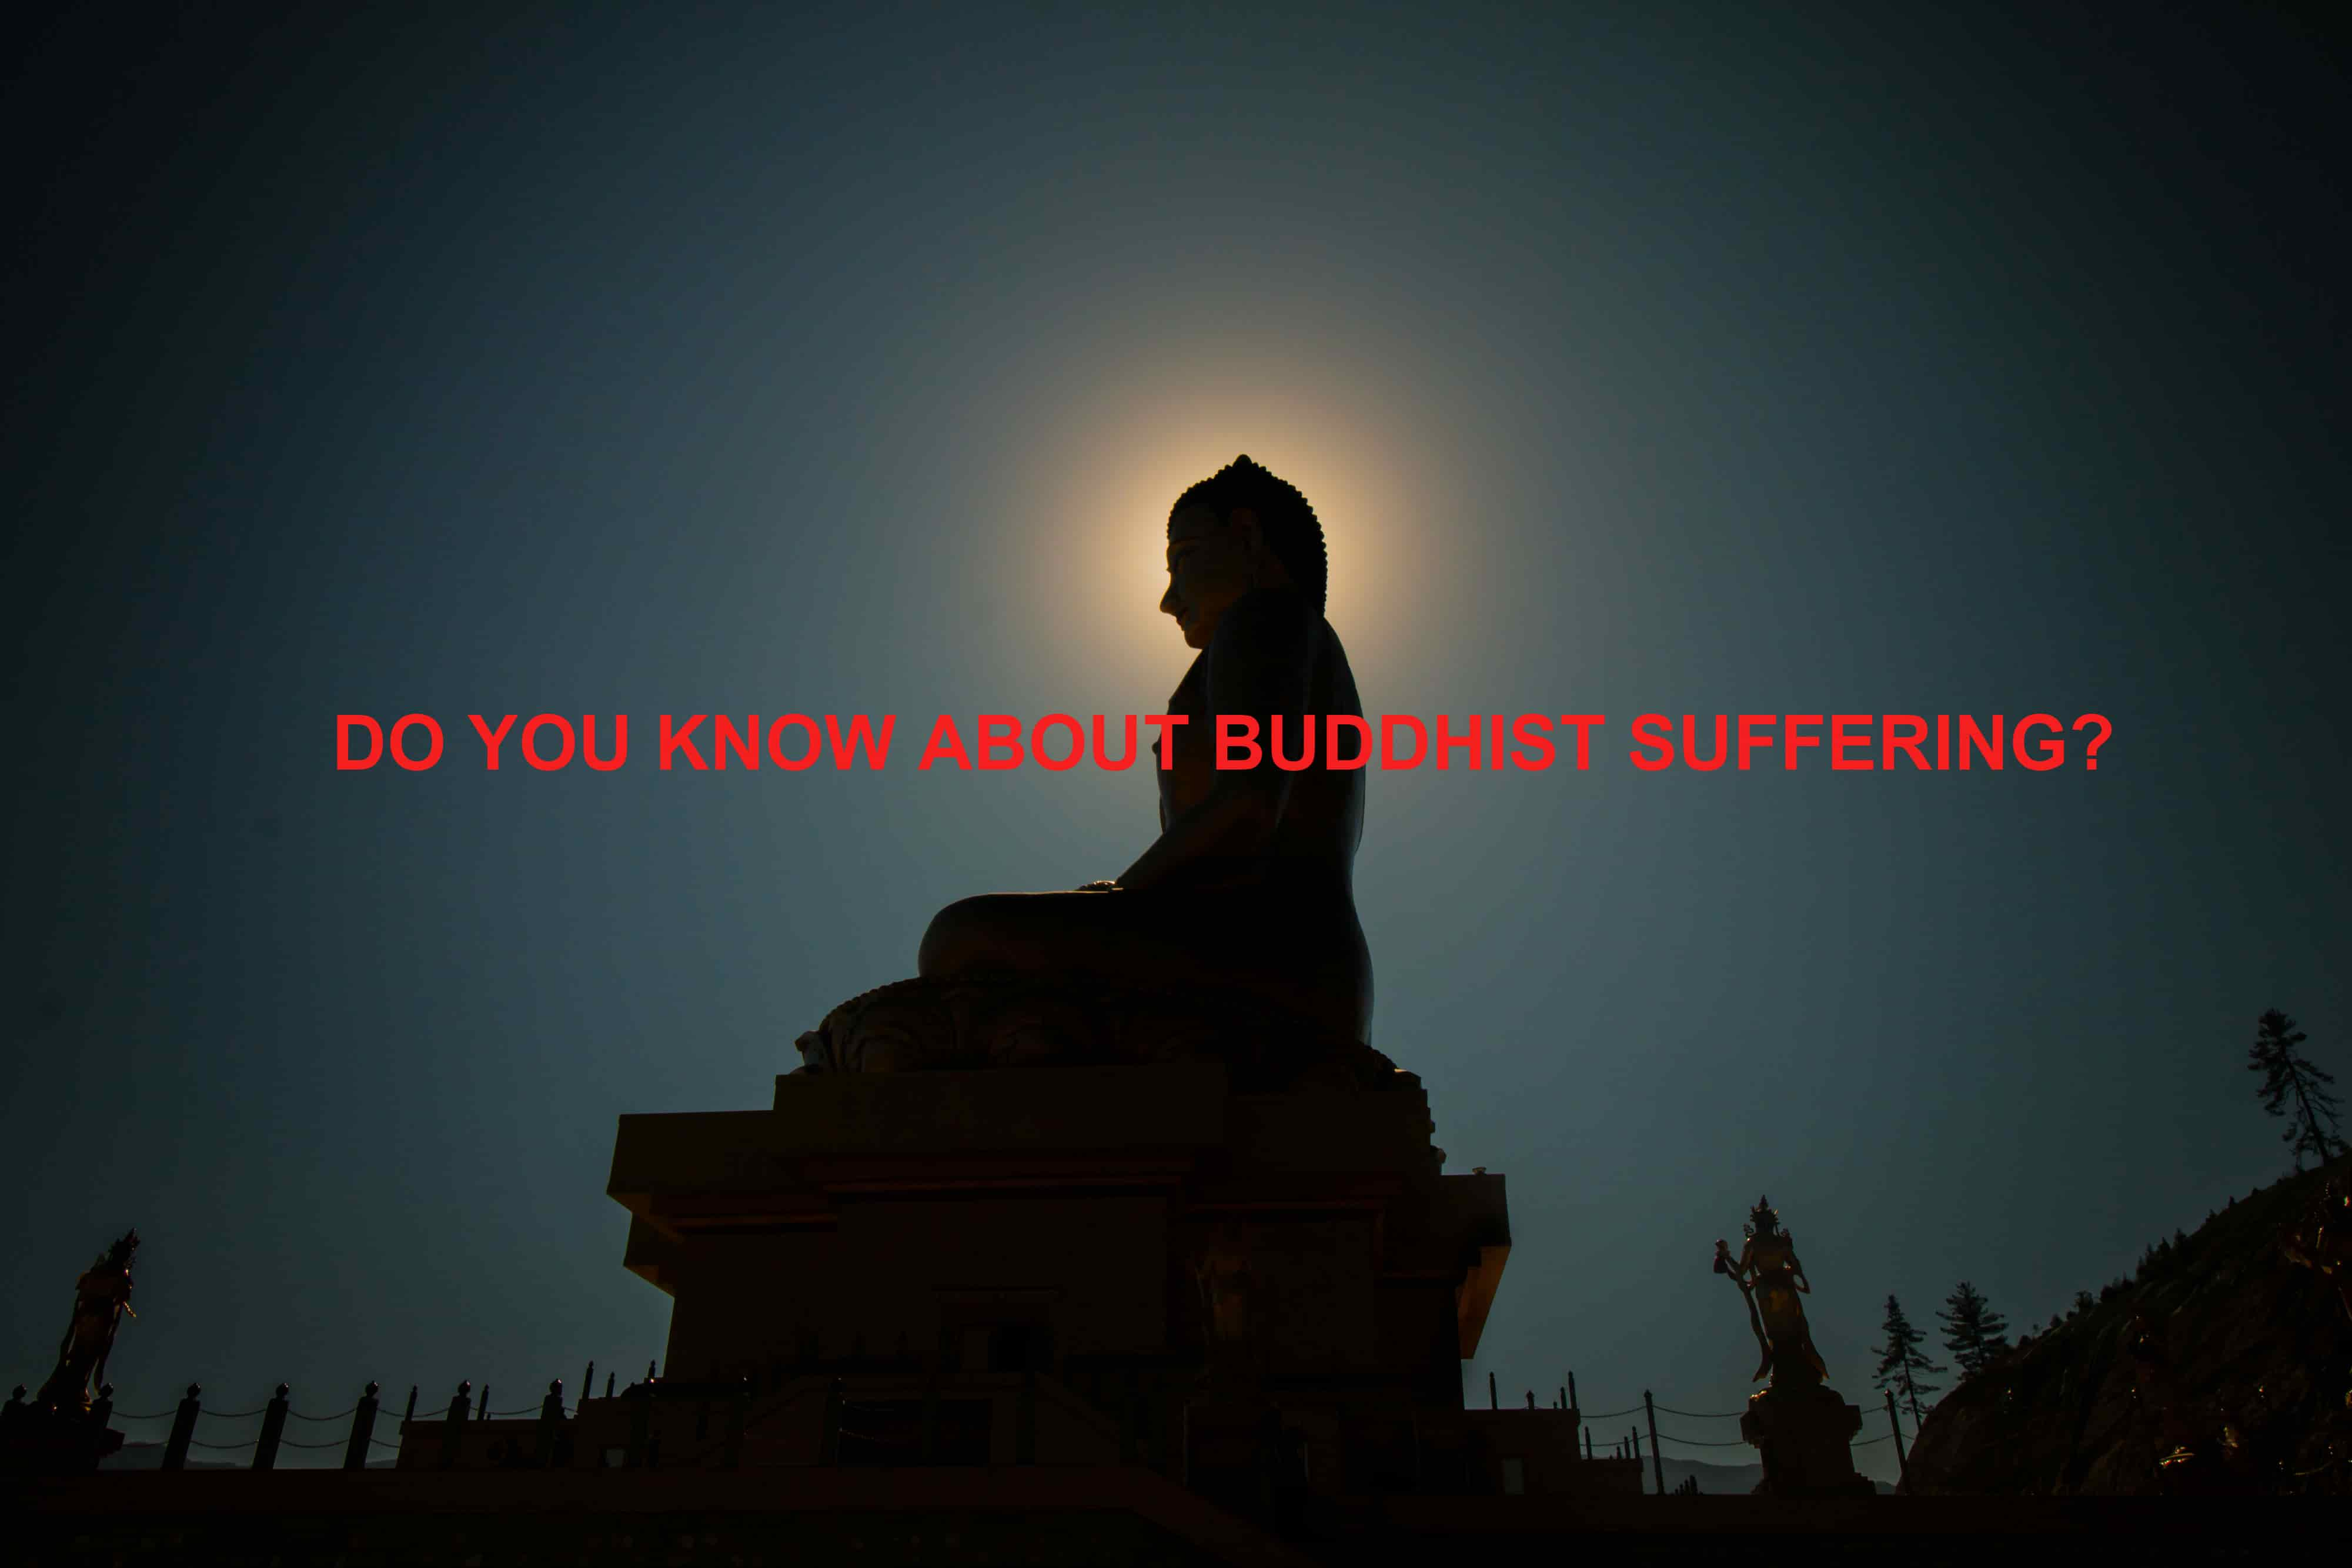 DO YOU KNOW ABOUT BUDDHIST SUFFERING?